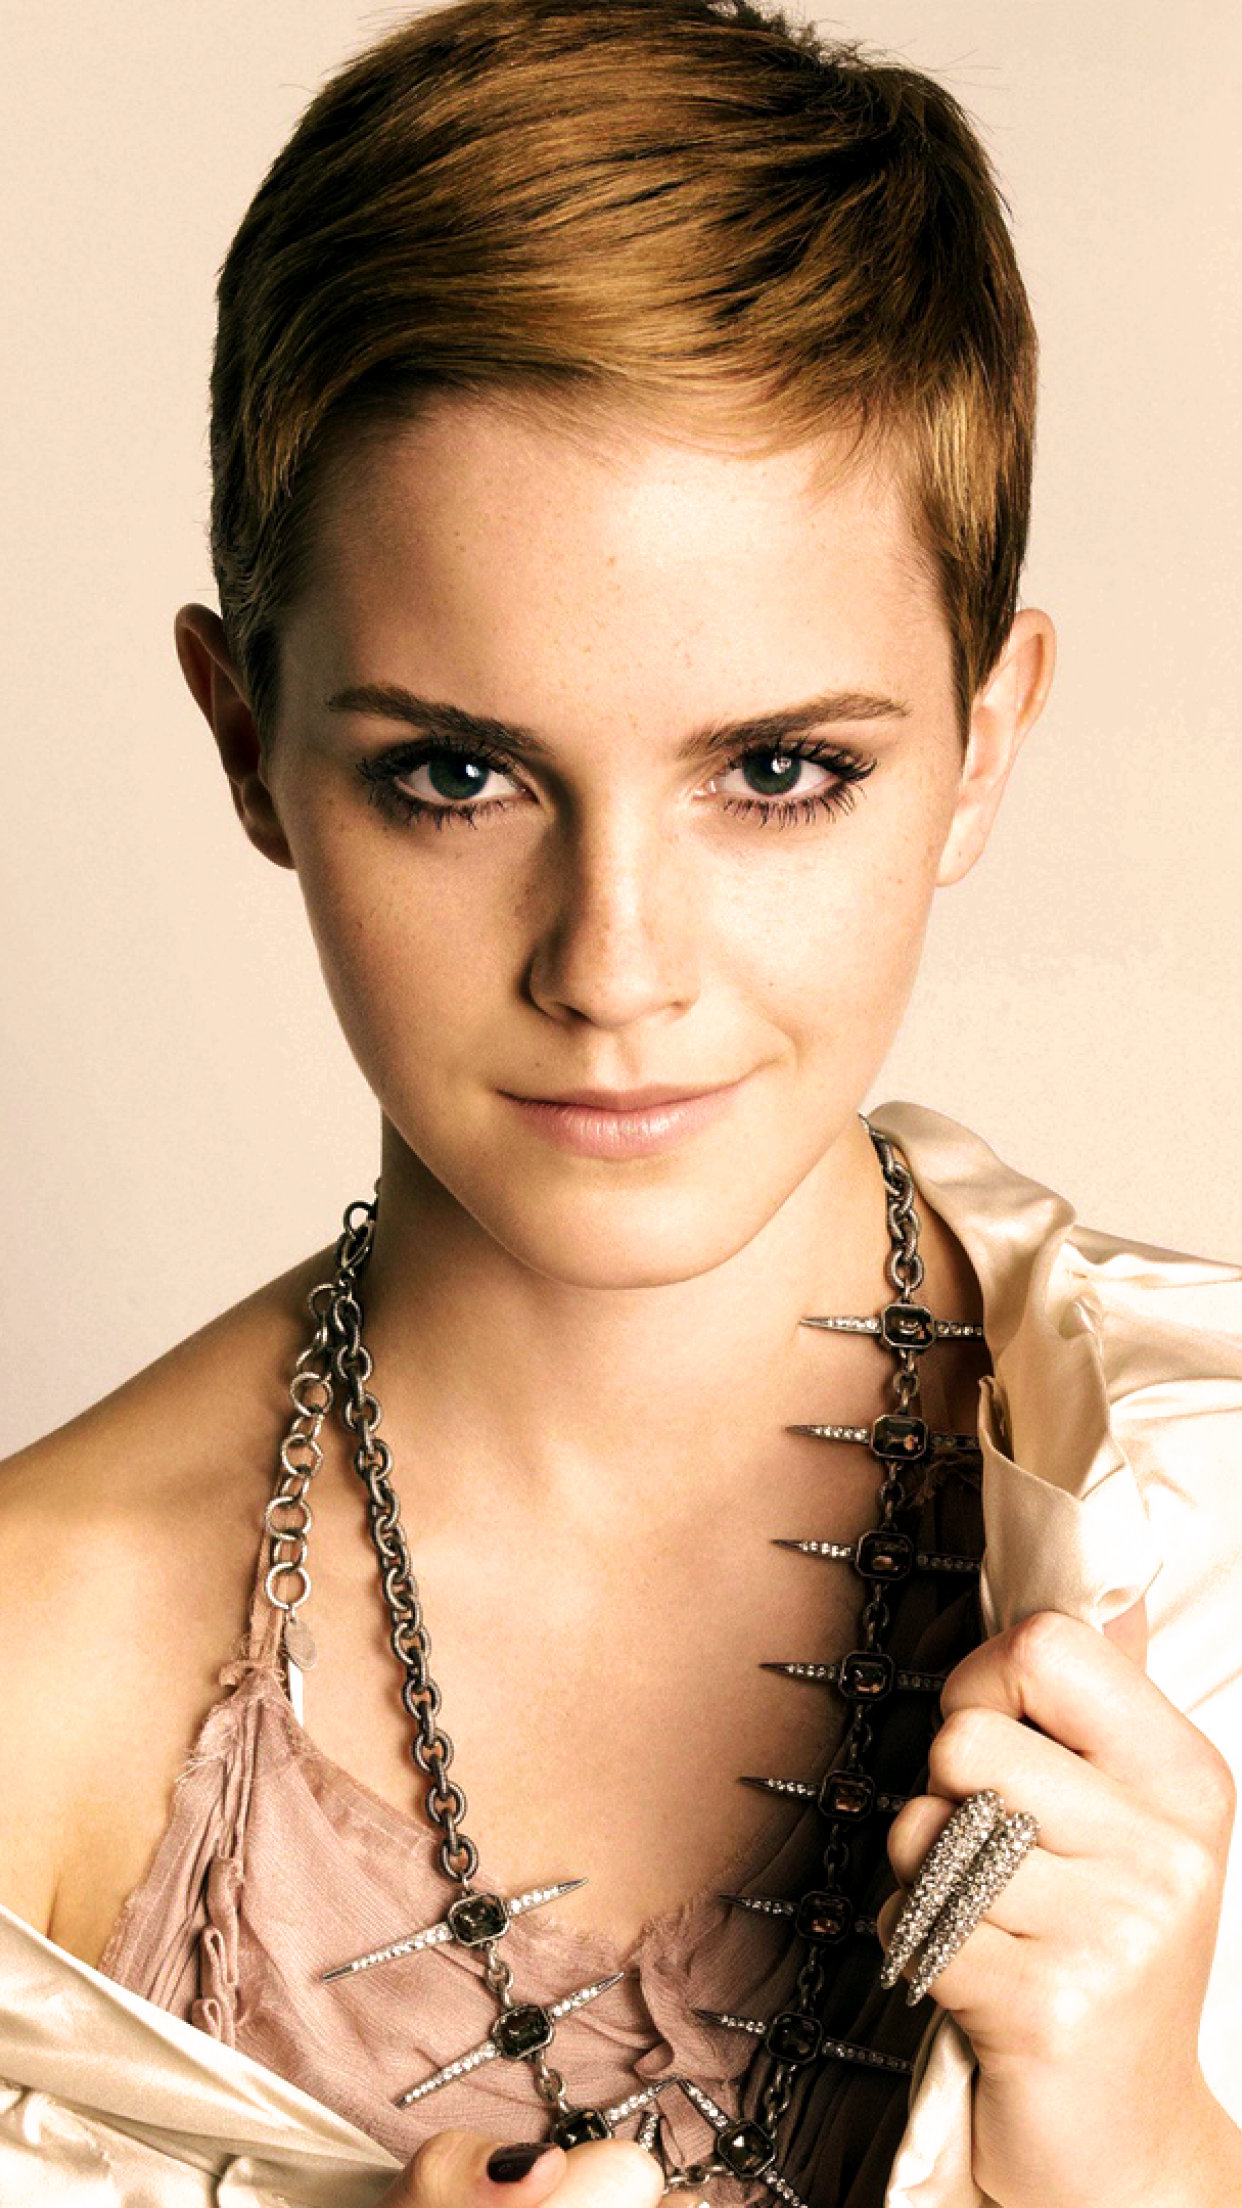 Hot Emma Watson iPhone Wallpaper